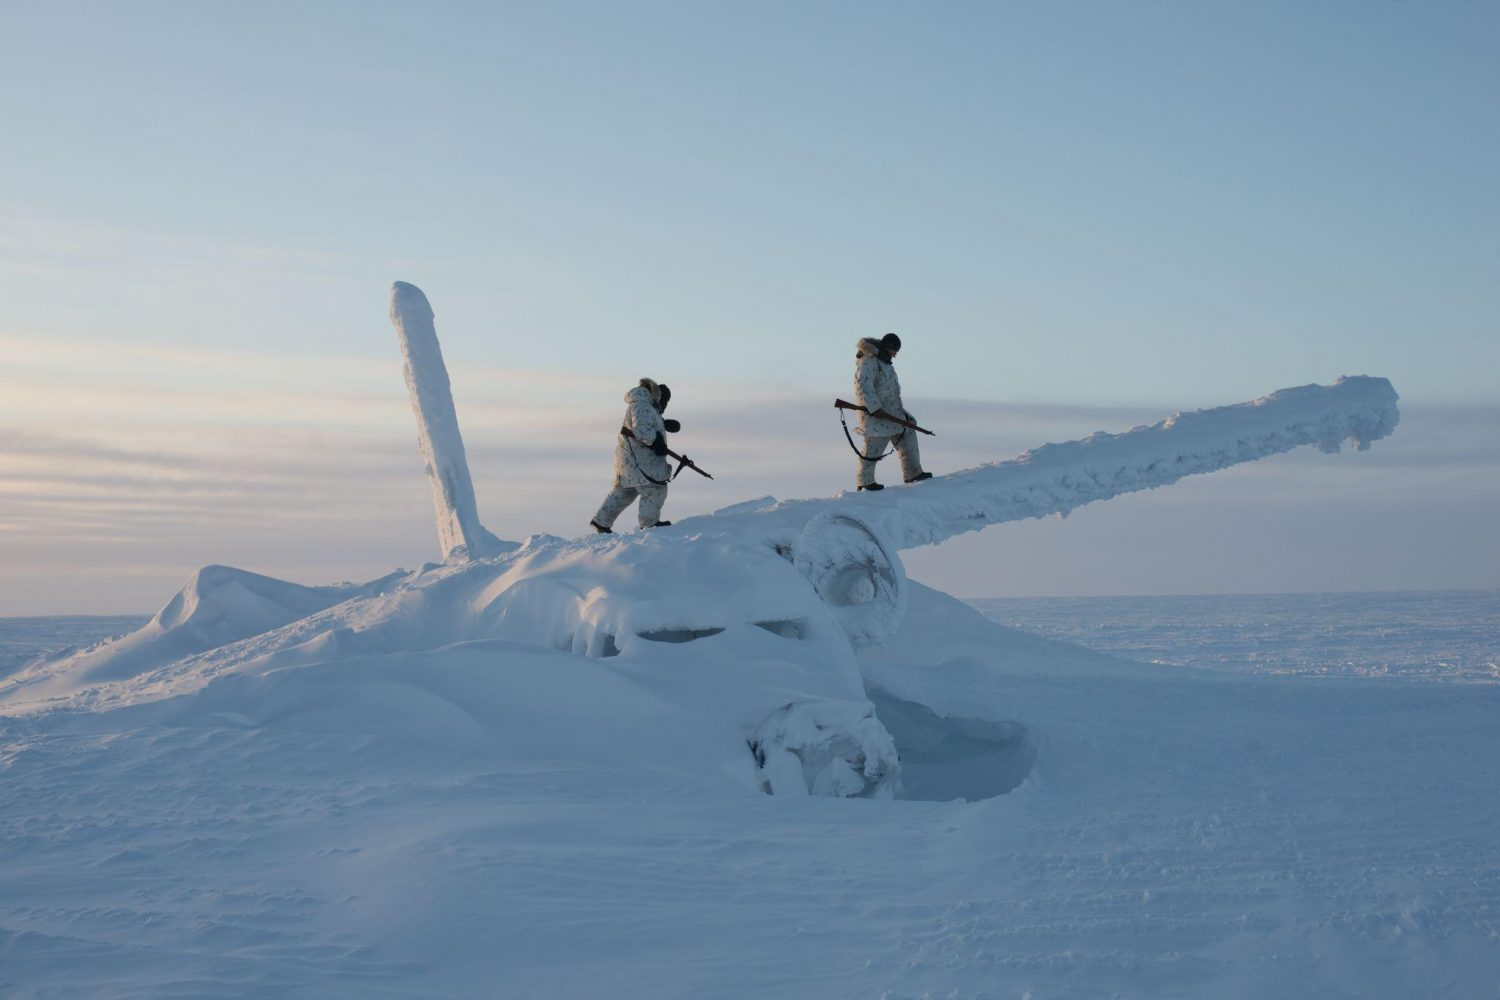 Canadian soldiers walking on the wreckage of an airplane, -50 Celsius, Resolute Bay, Nunavut, Canada